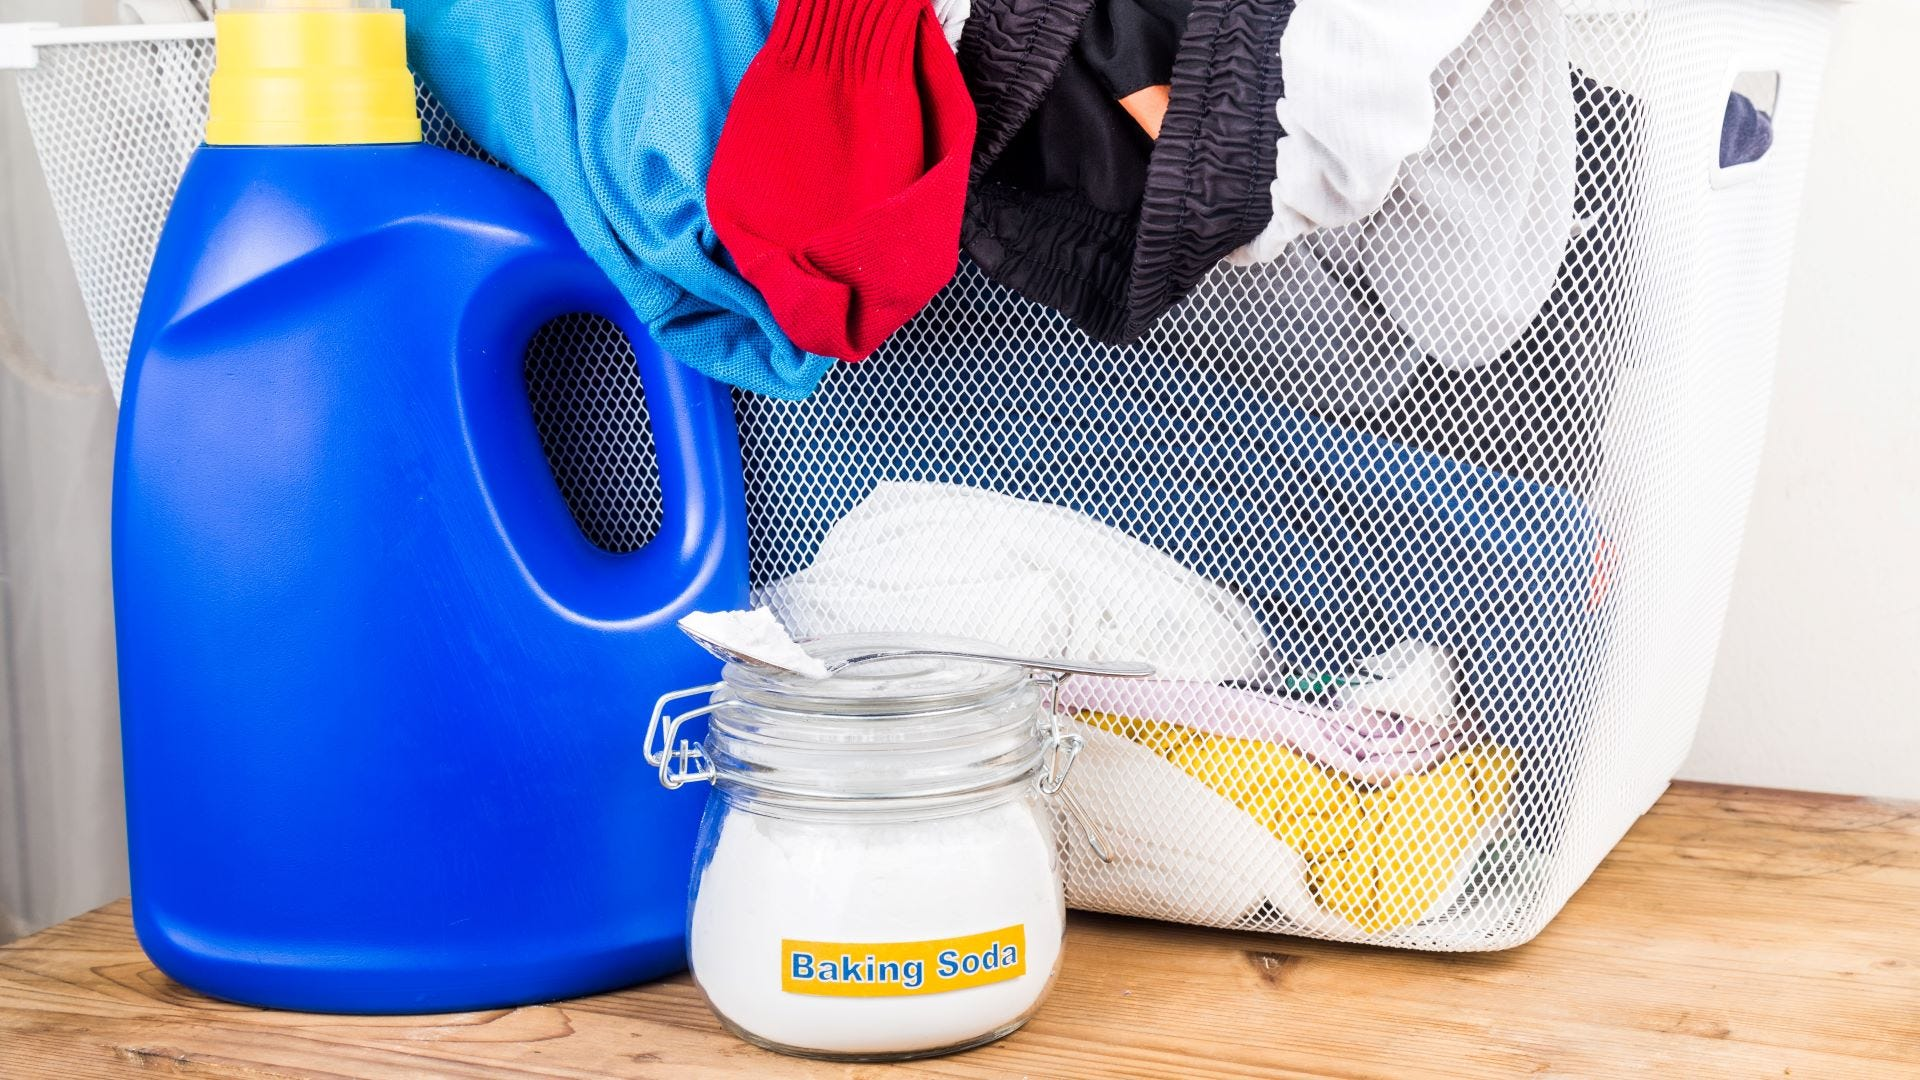 A jar of baking soda next to a bottle of laundry detergent and a basket full of dirty laundry.